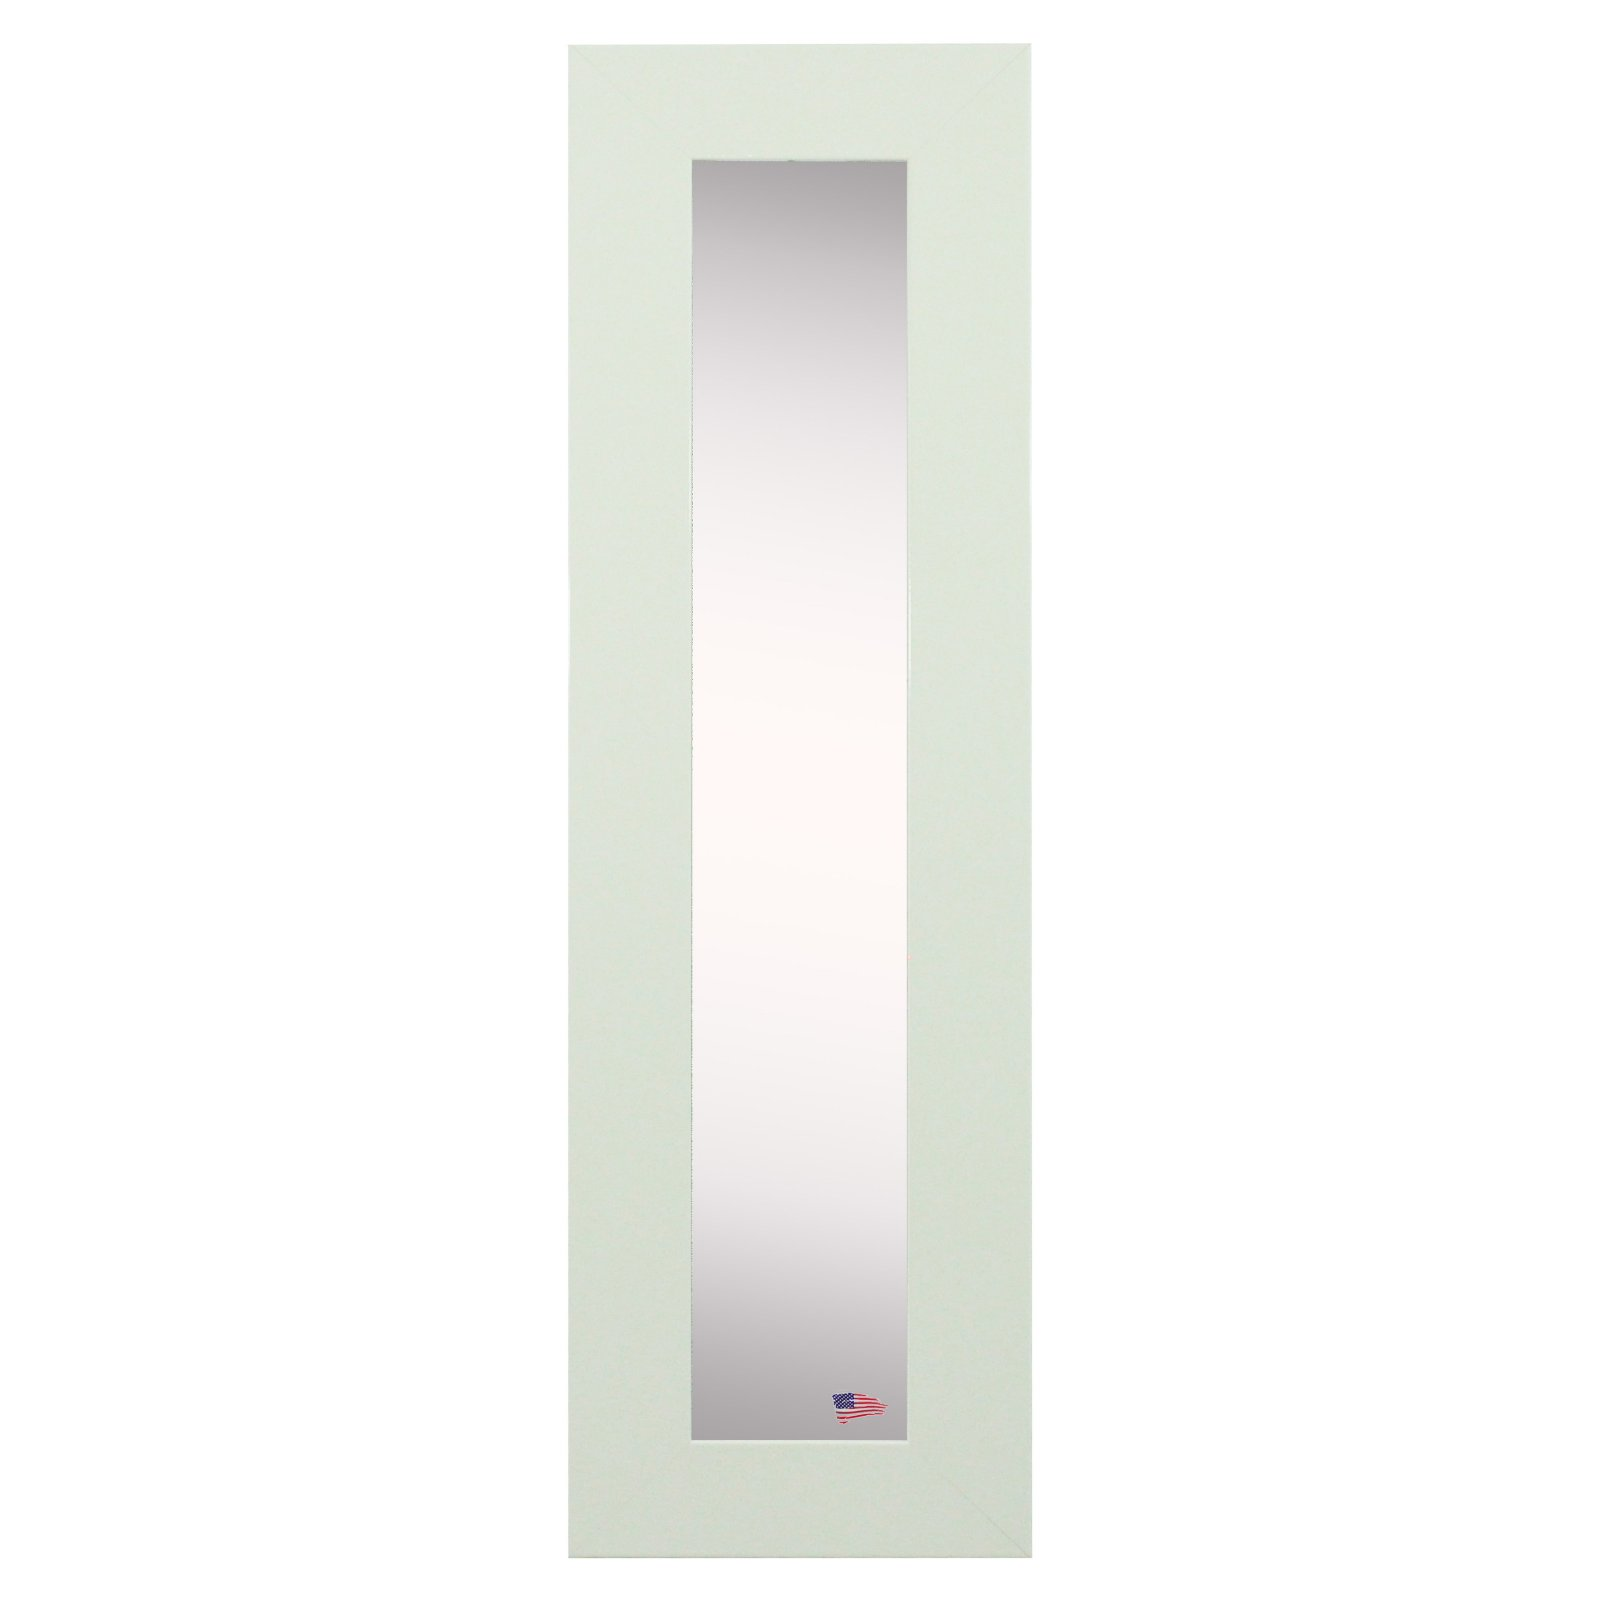 Rayne Mirrors Delta White Panel Wall Mirror Set of 2 by Overstock